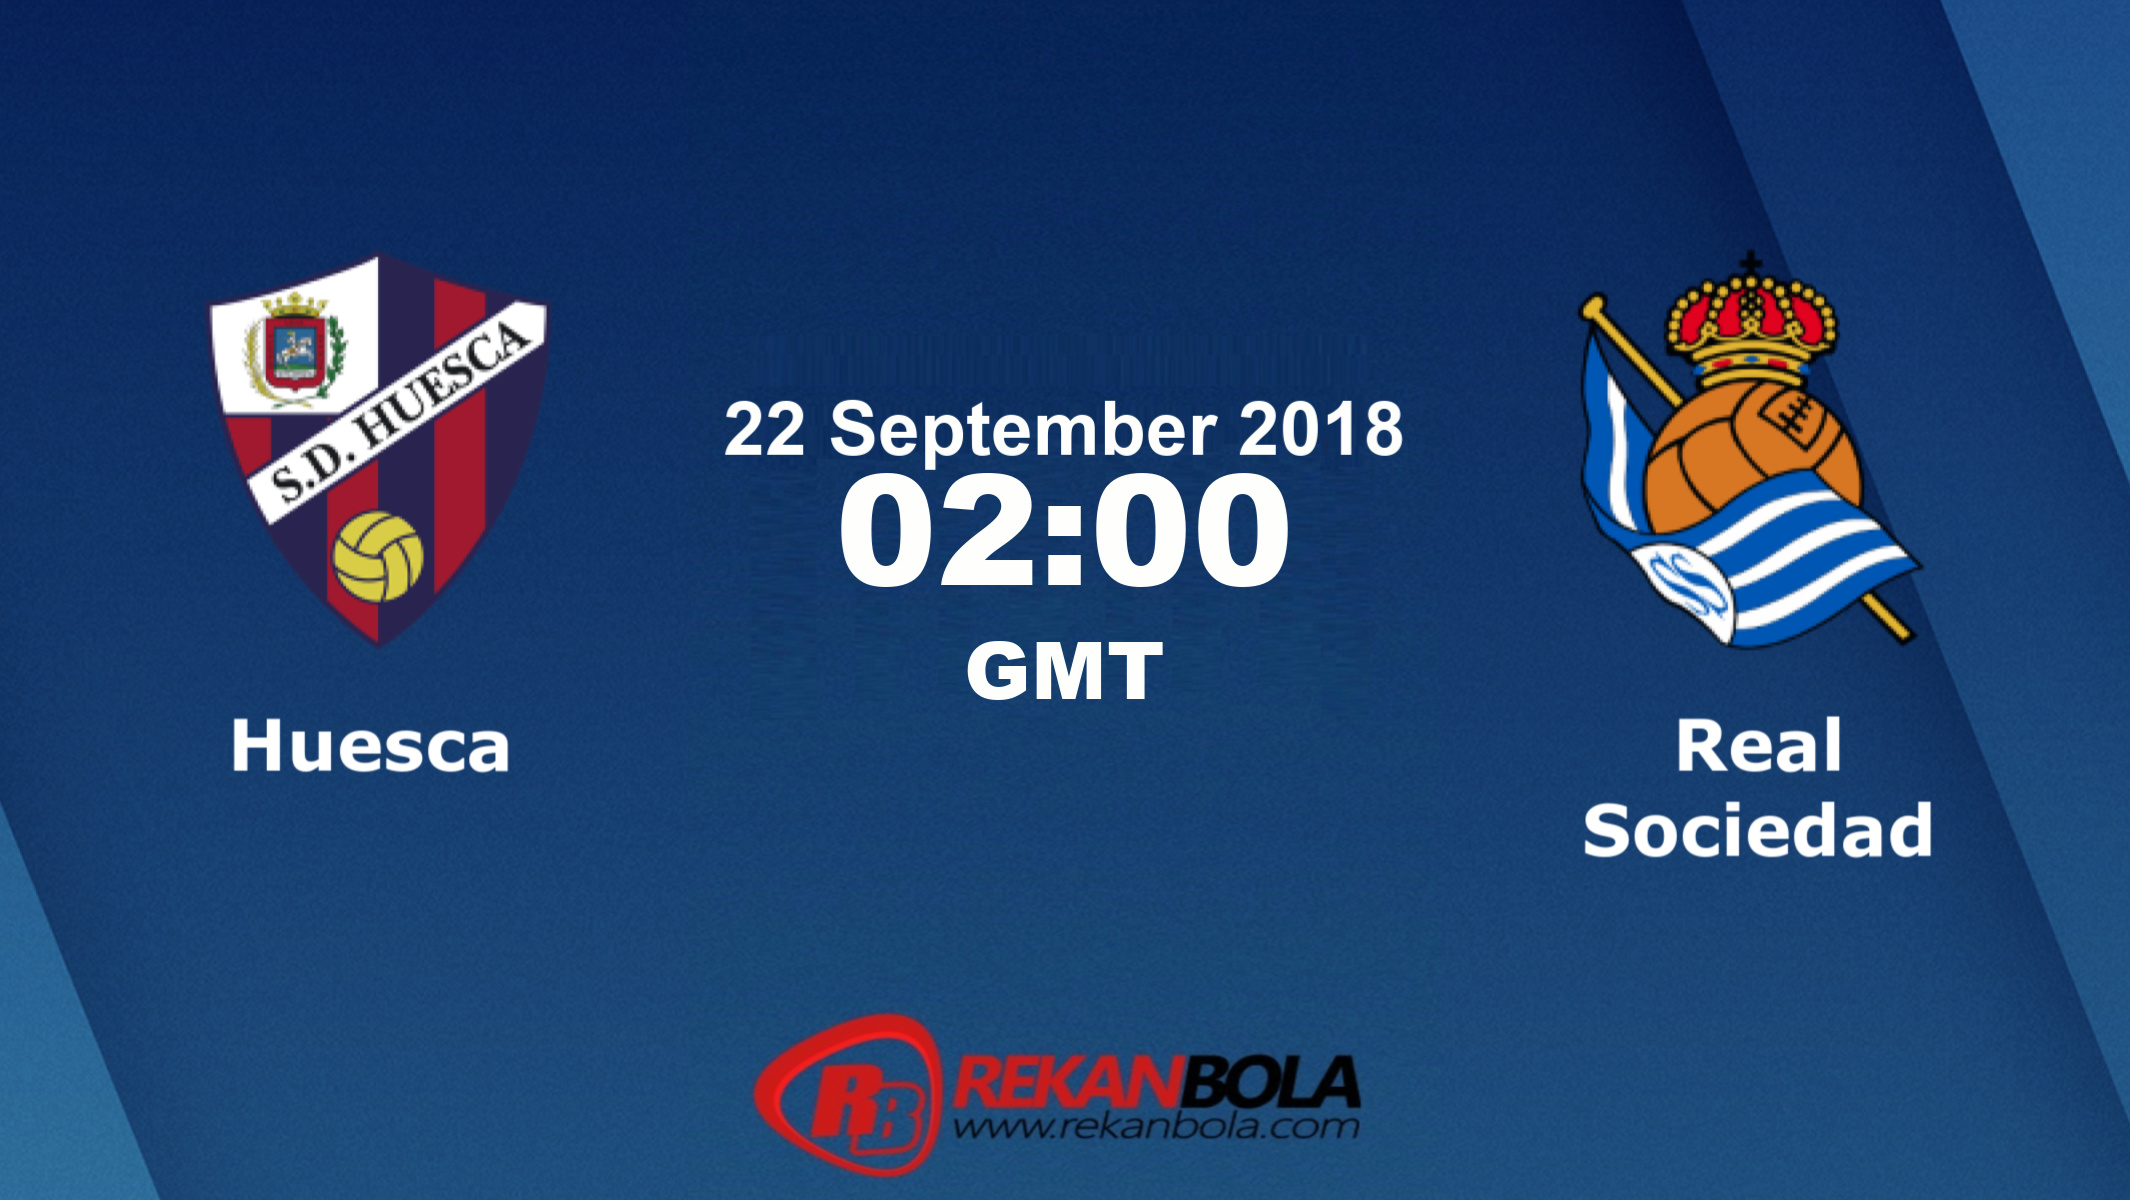 Nonton Siaran Live Streaming Huesca Vs Sociedad 22 September 2018